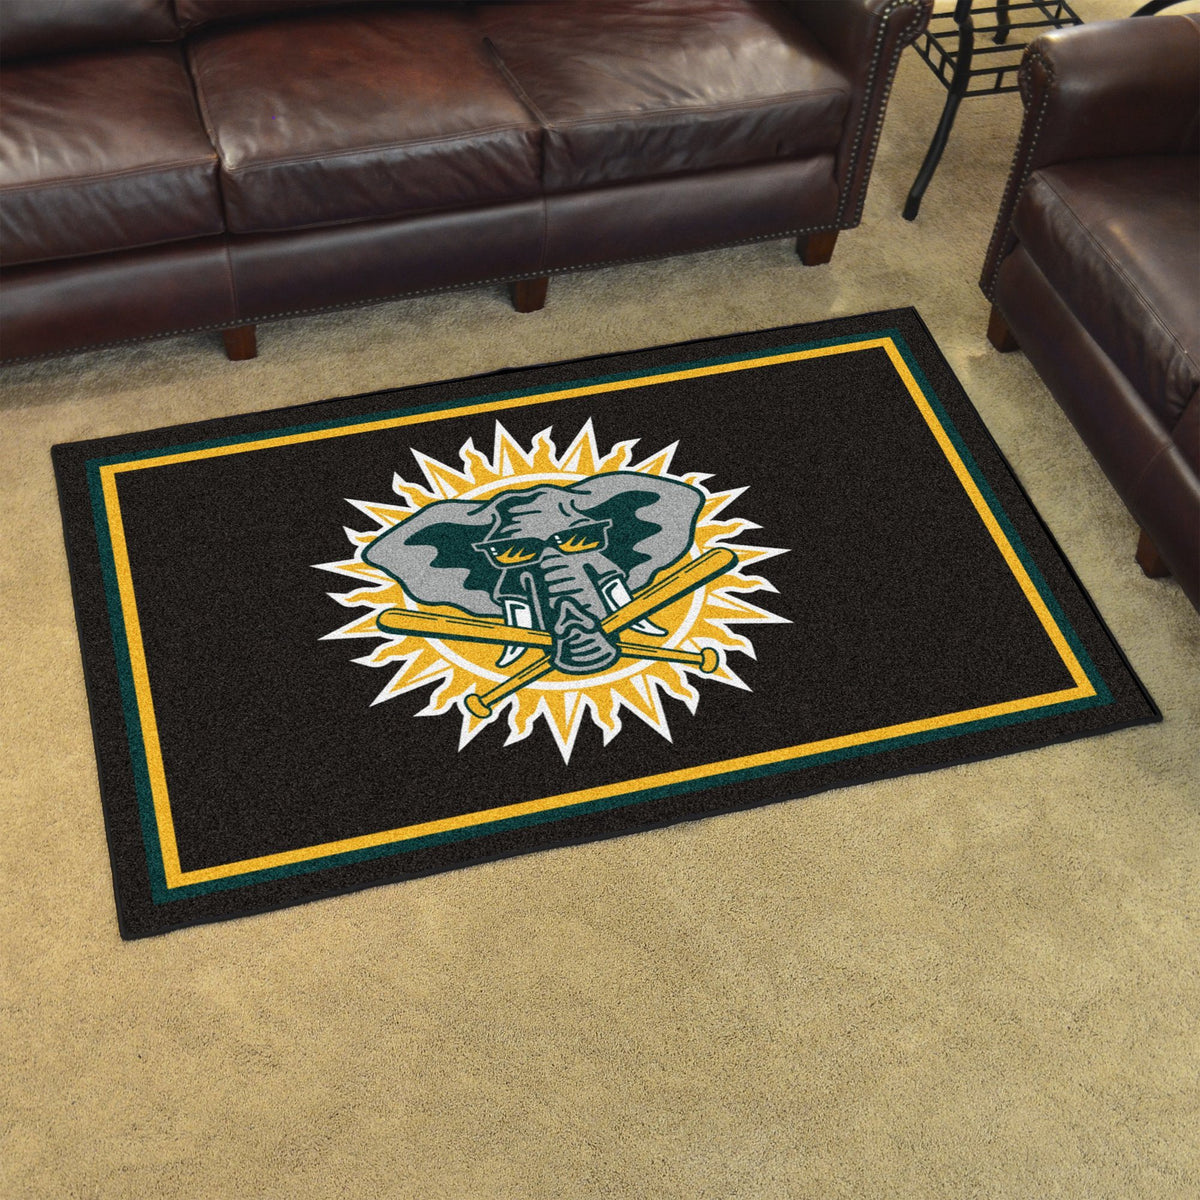 MLB Retro - 4' x 6' Rug MLB Retro Mats, Plush Rugs, 4x6 Rug, MLB, Home Fan Mats Oakland Athletics 2